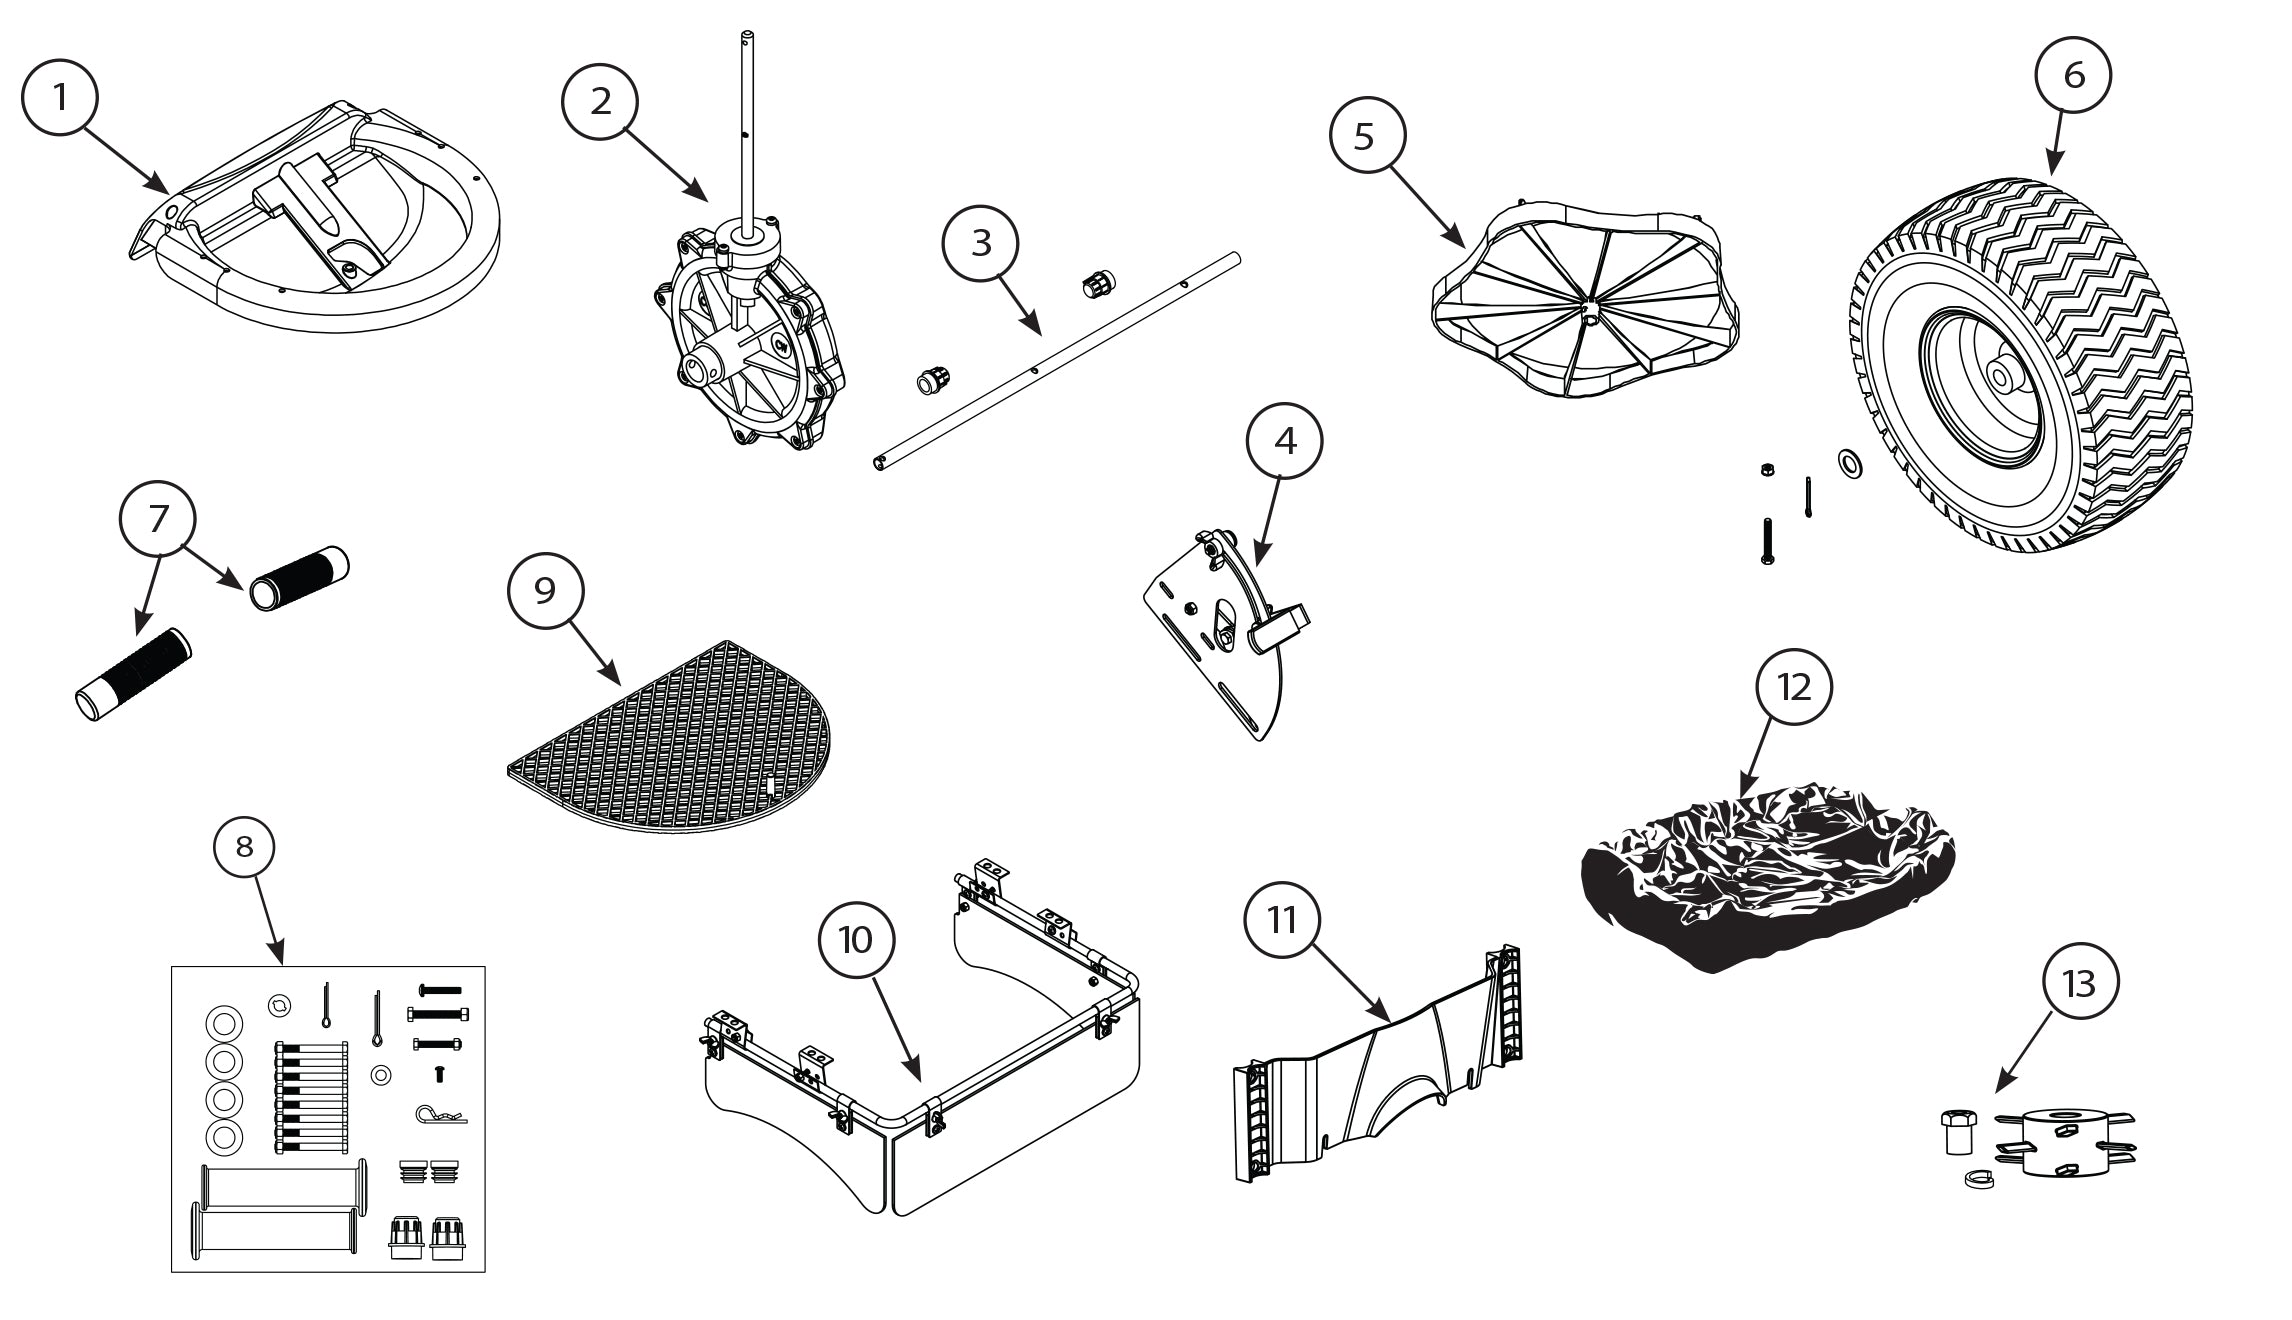 82108B replacement parts diagram